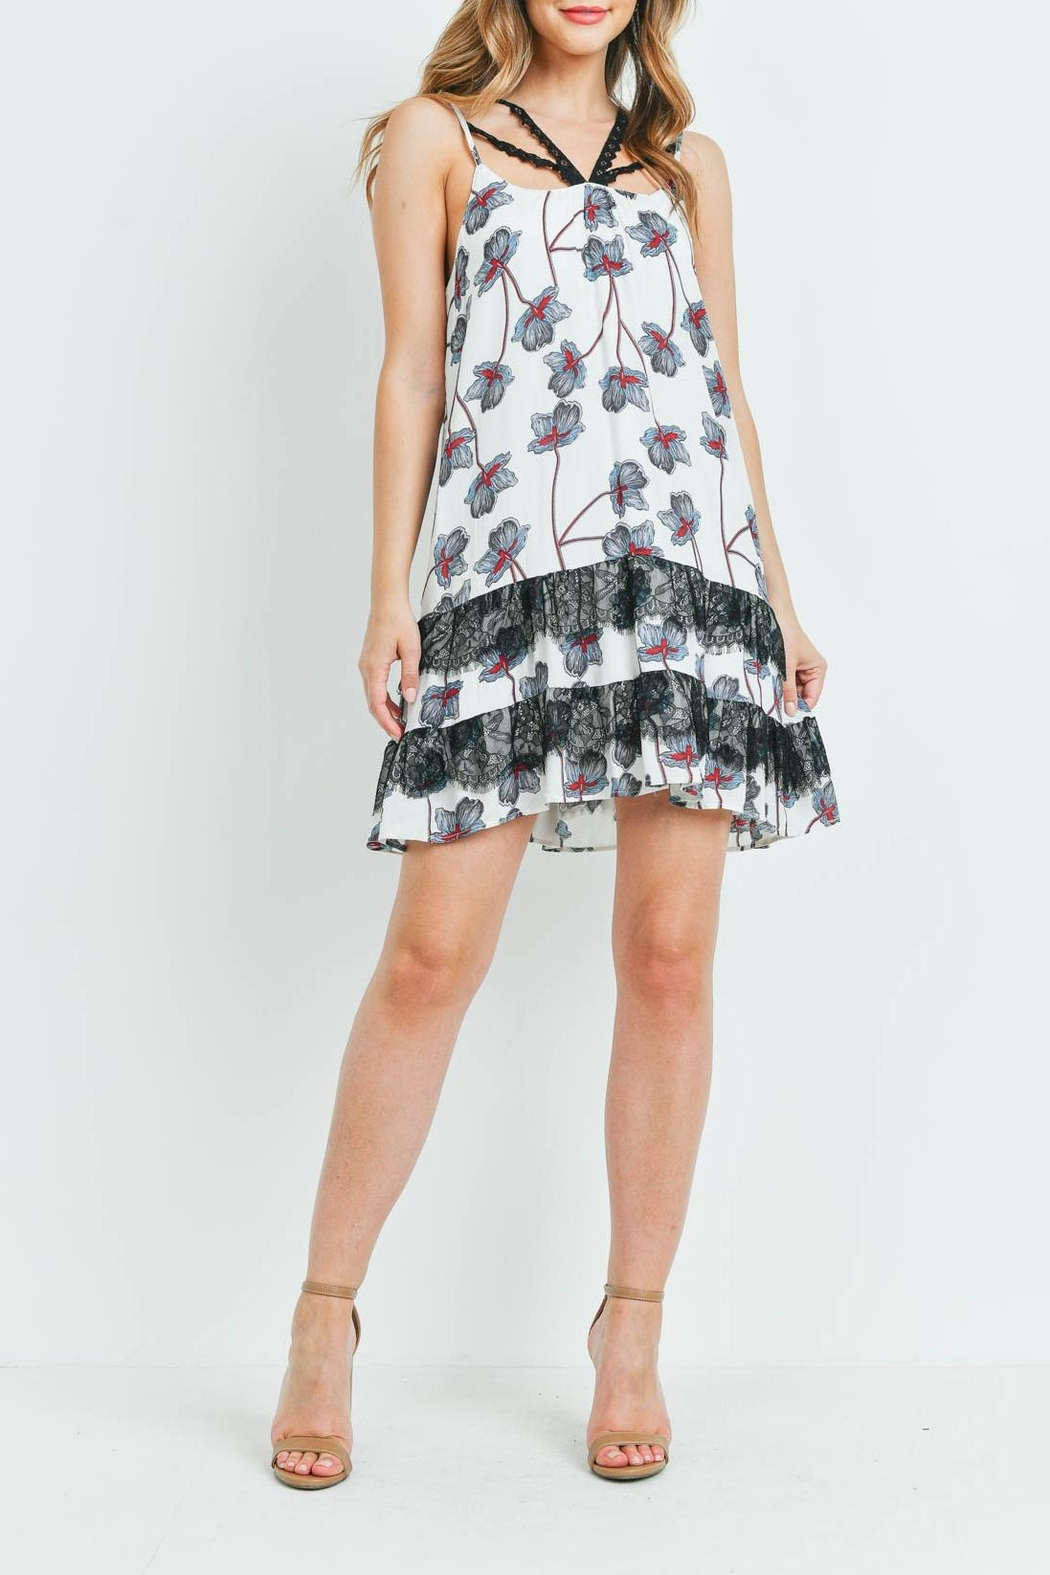 Riah Fashion White-With-Flower Print Dress - Back Cropped Image